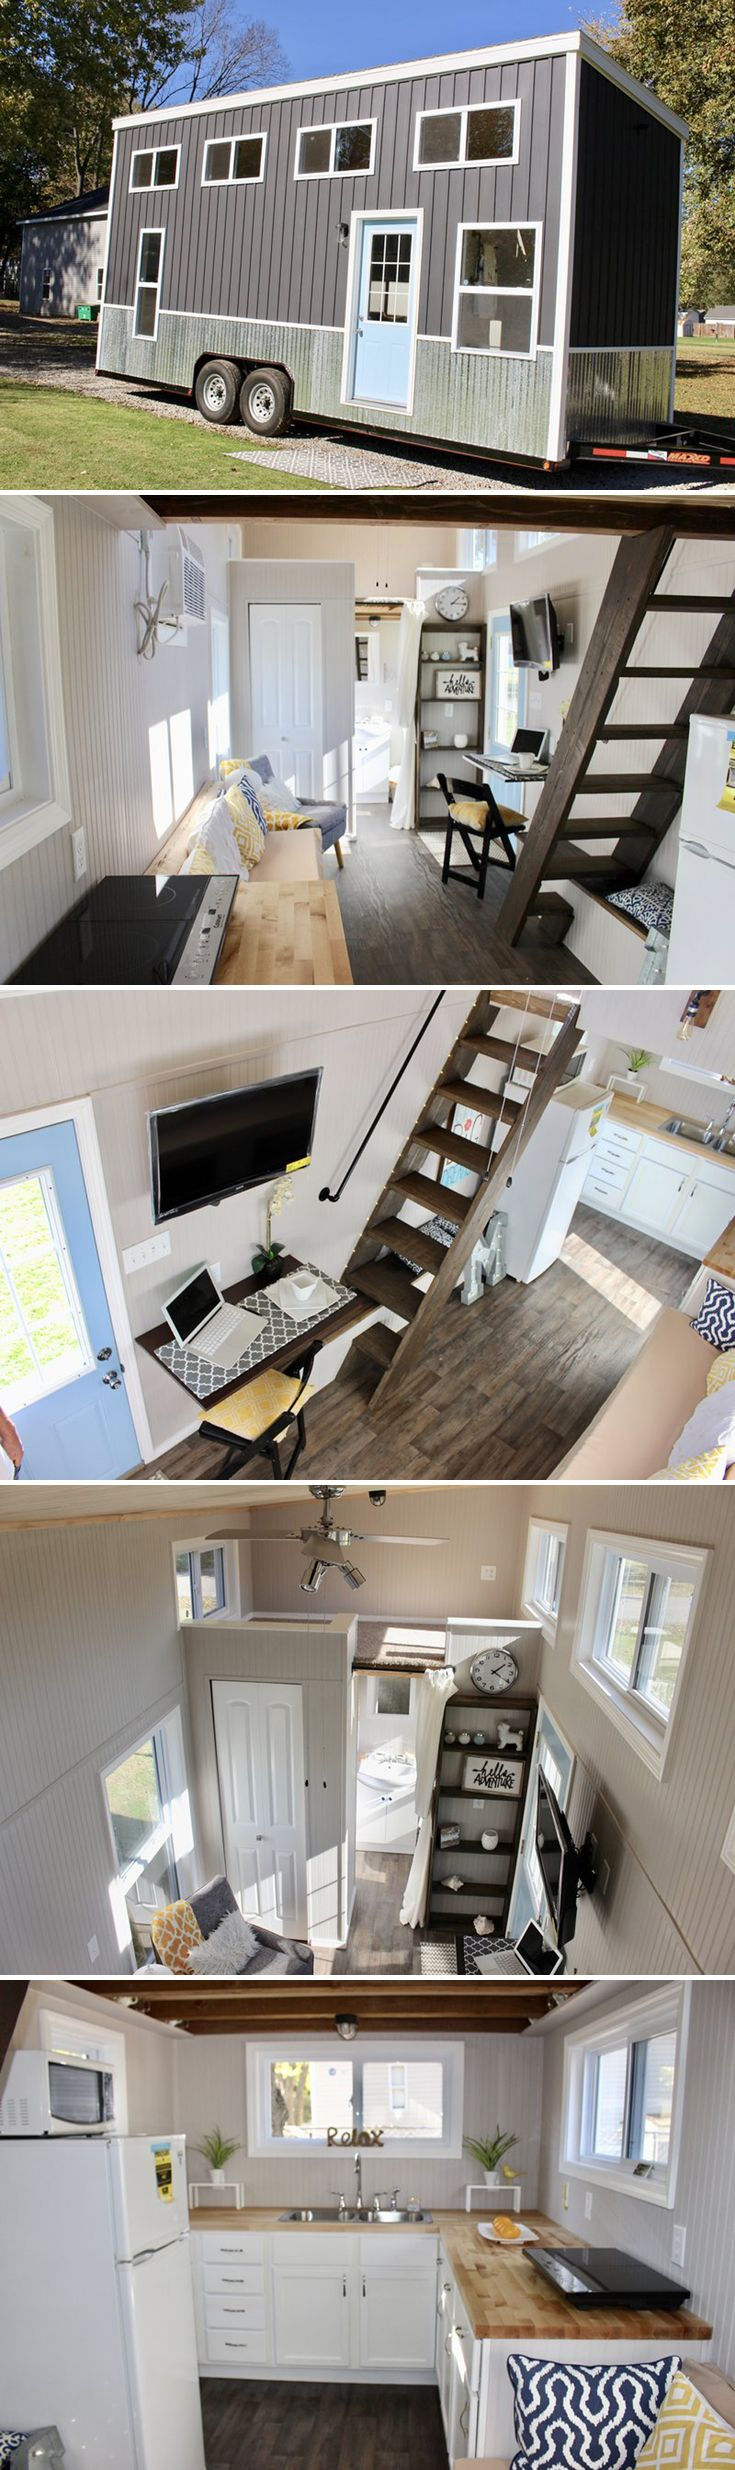 A 24' tiny house built by Mark and Emily Mitchel. After 30 years of construction experience, Mark is now putting his expertise to use building tiny houses.